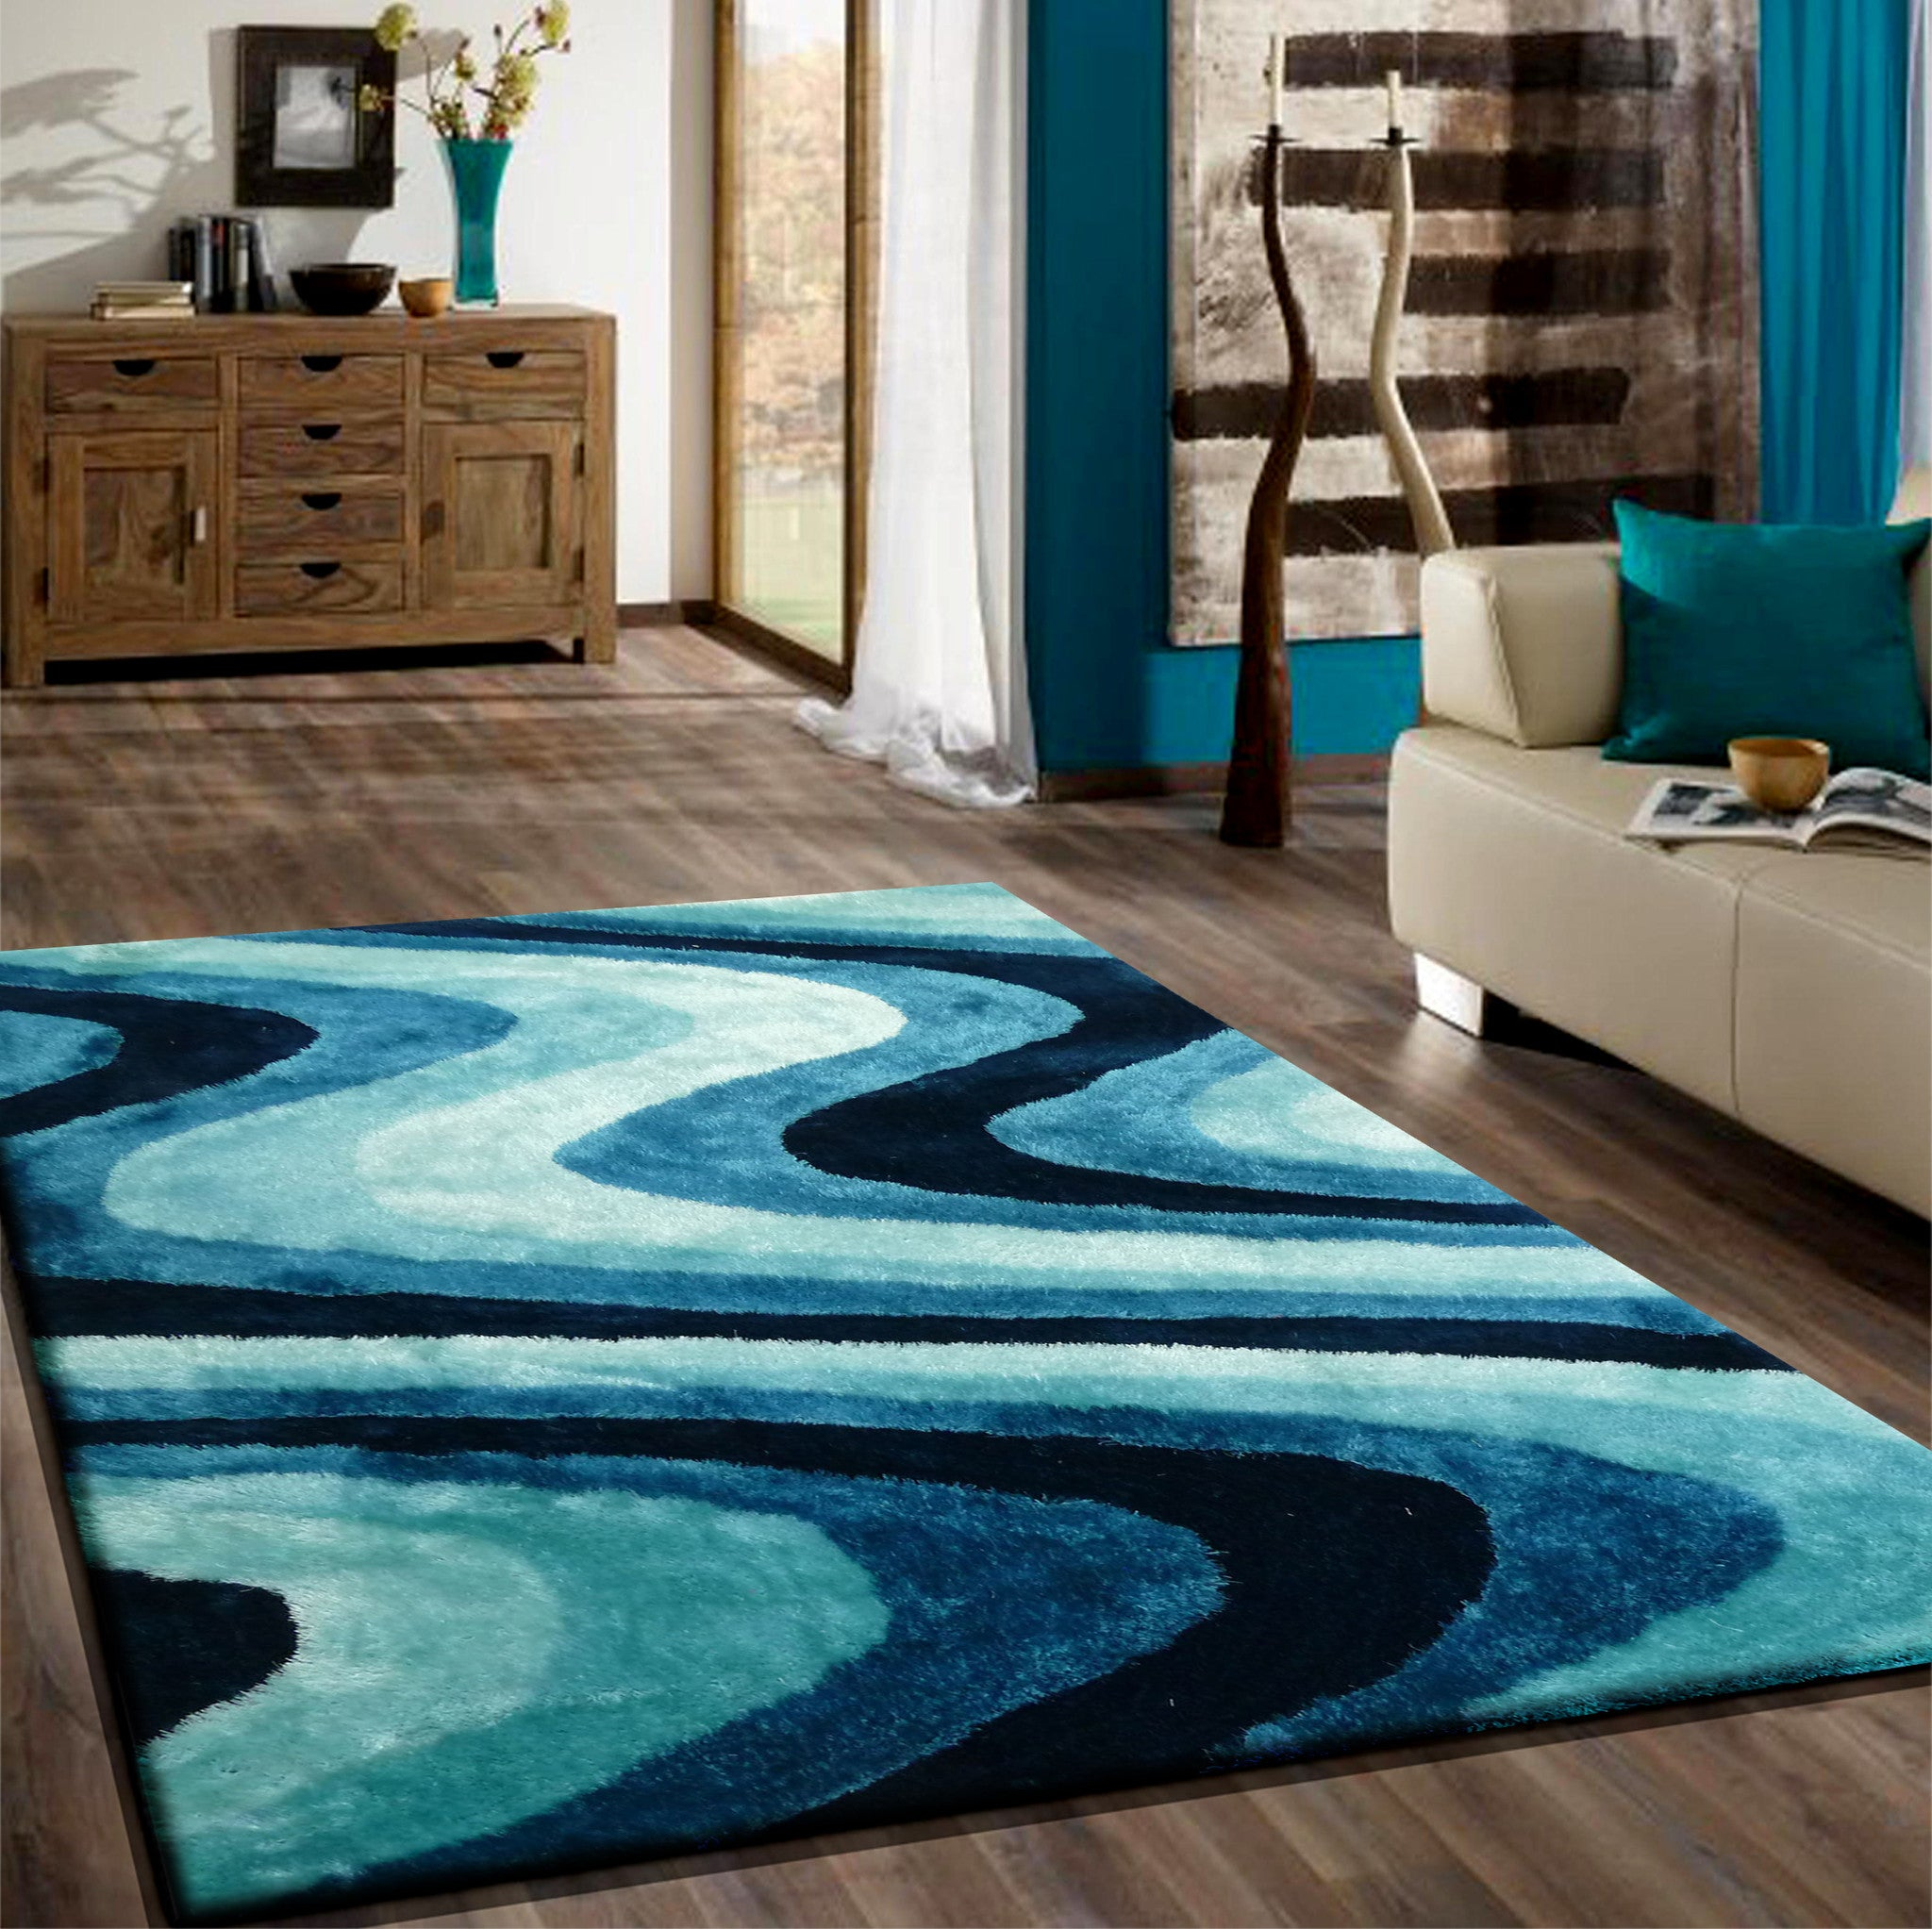 2 piece set shaggy indoor area rug in turquoise rug addiction. Black Bedroom Furniture Sets. Home Design Ideas